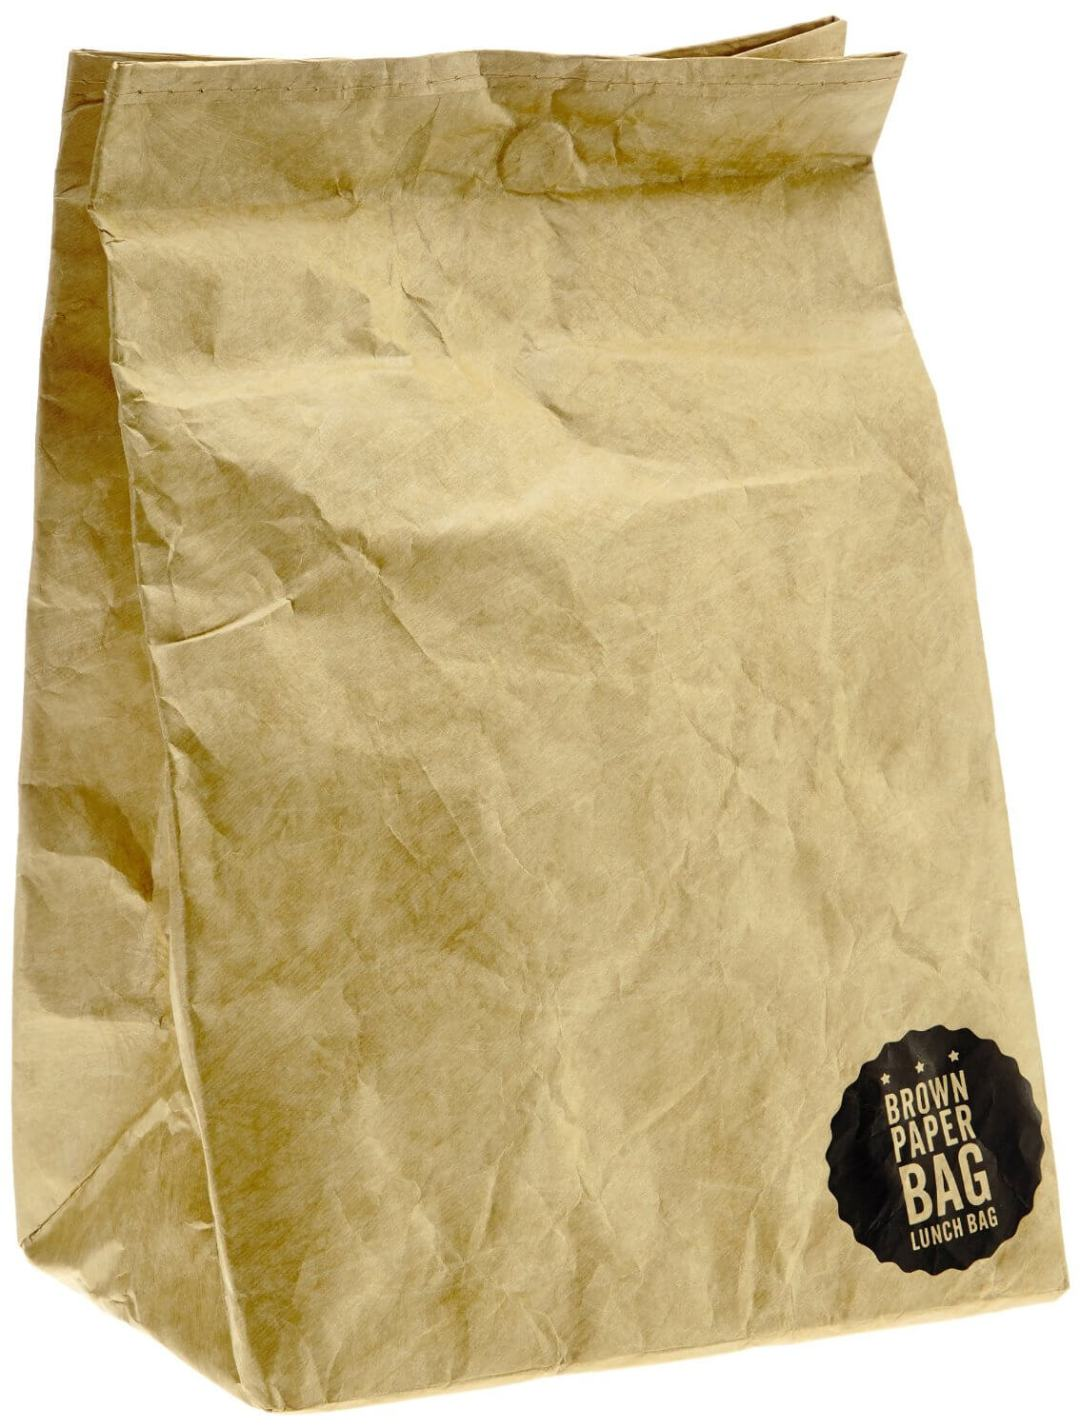 Luckies of London Brown Paper Lunch Bag